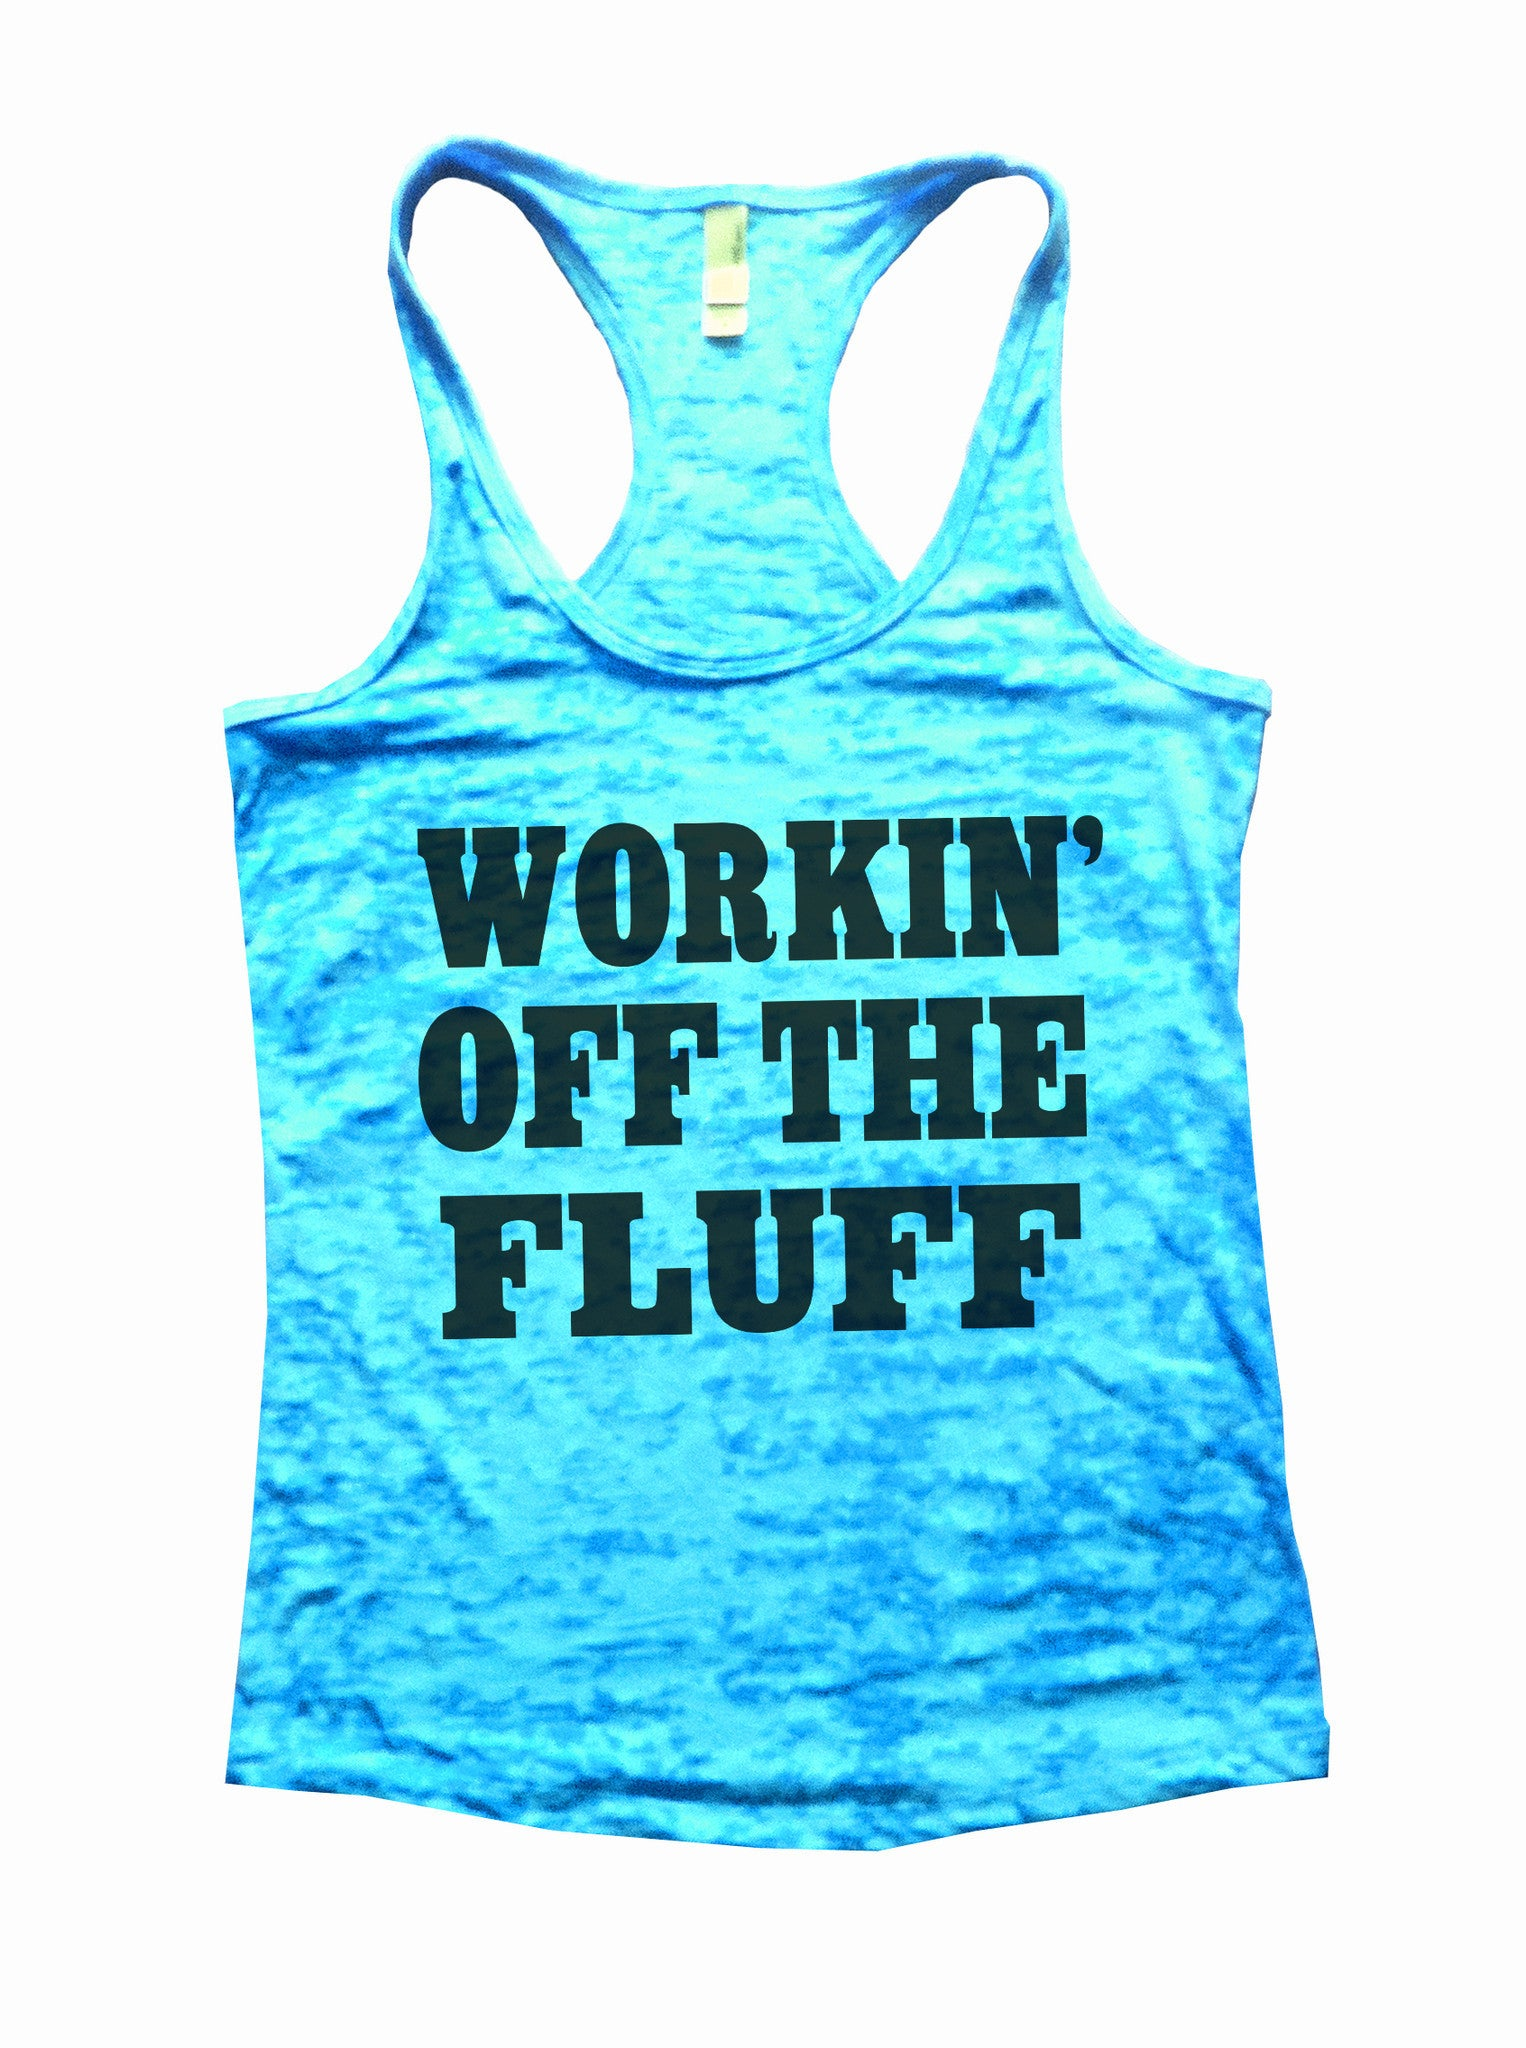 Working Off The Fluff Burnout Tank Top By BurnoutTankTops.com - 688 - Funny Shirts Tank Tops Burnouts and Triblends  - 4